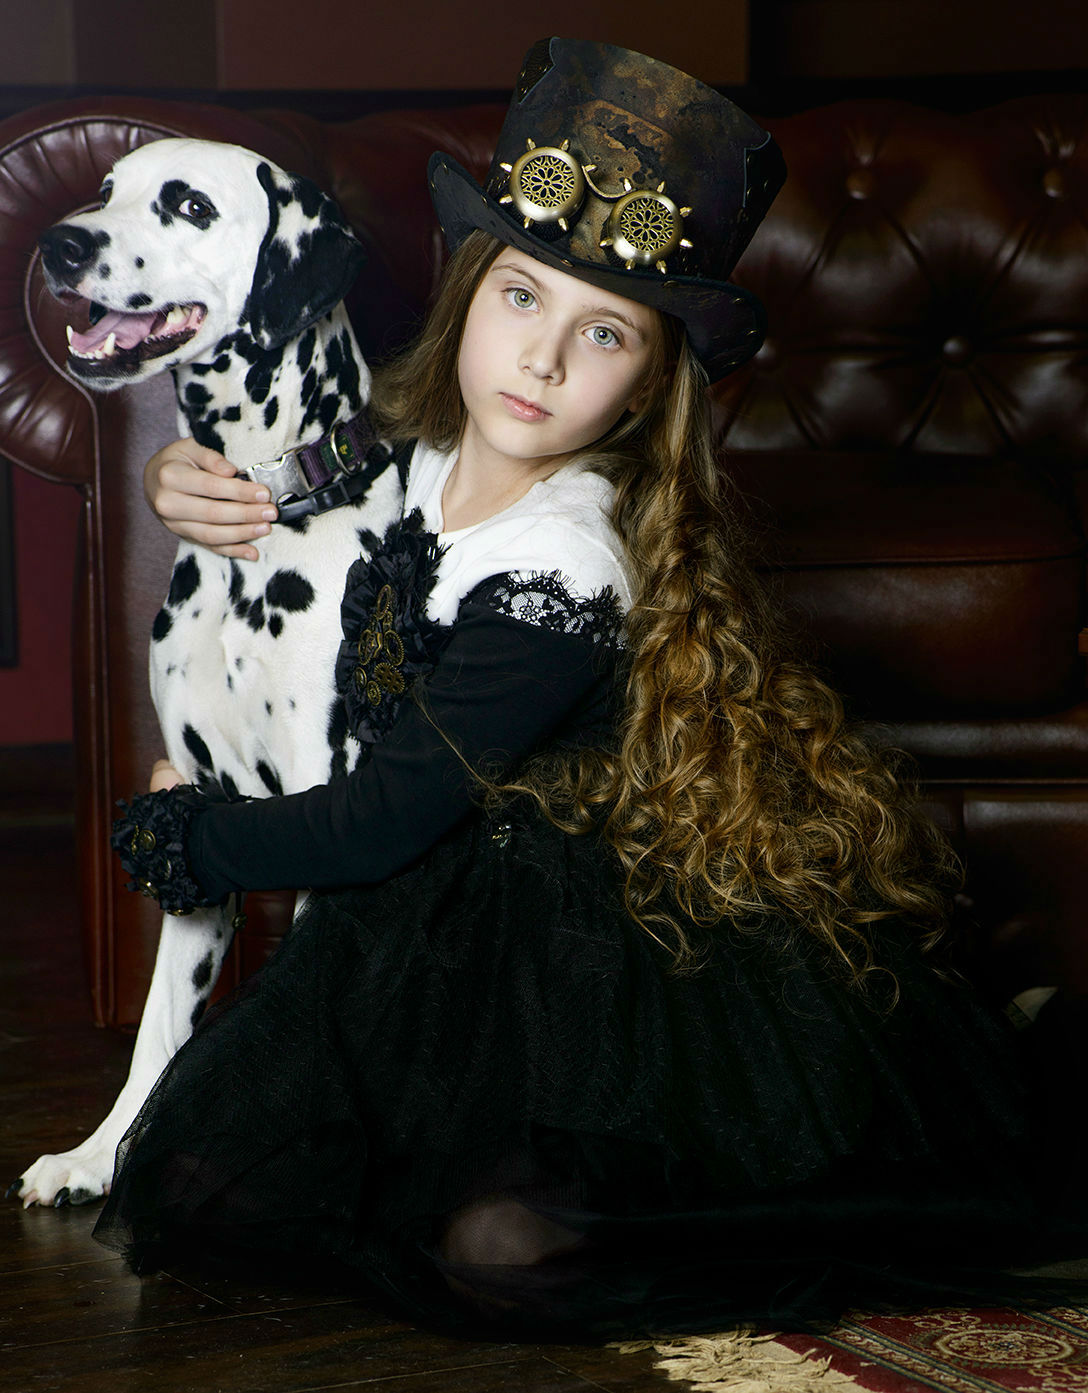 steampunk photography of young girl with dog